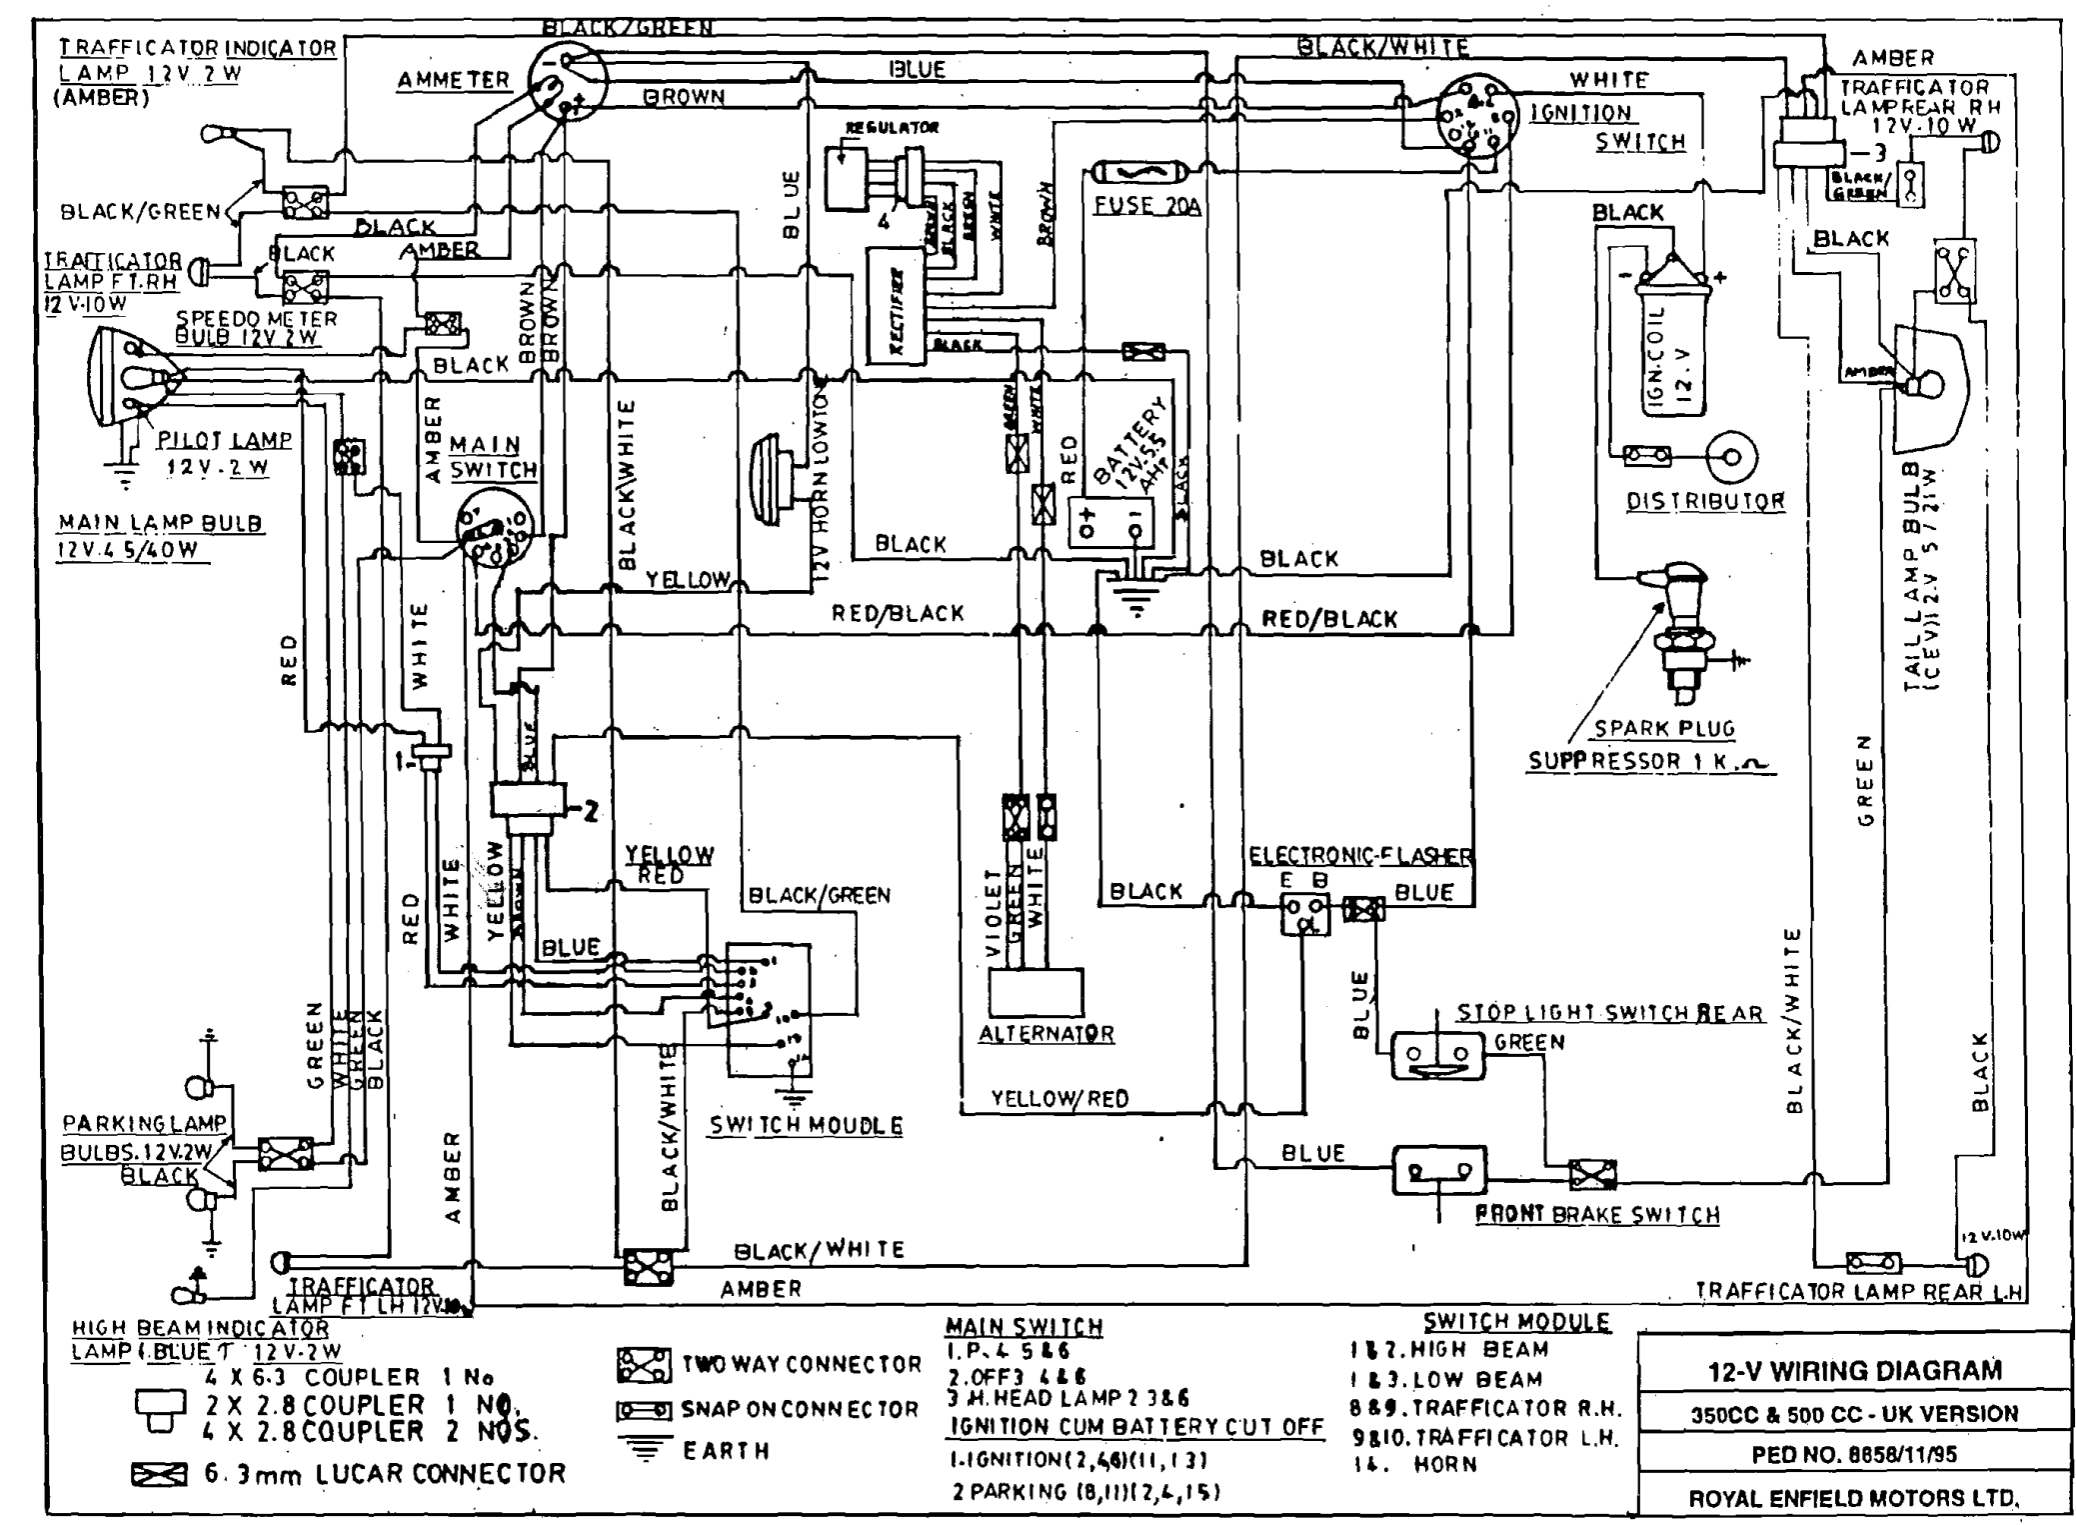 Wiring Diagram For Squire Bullet